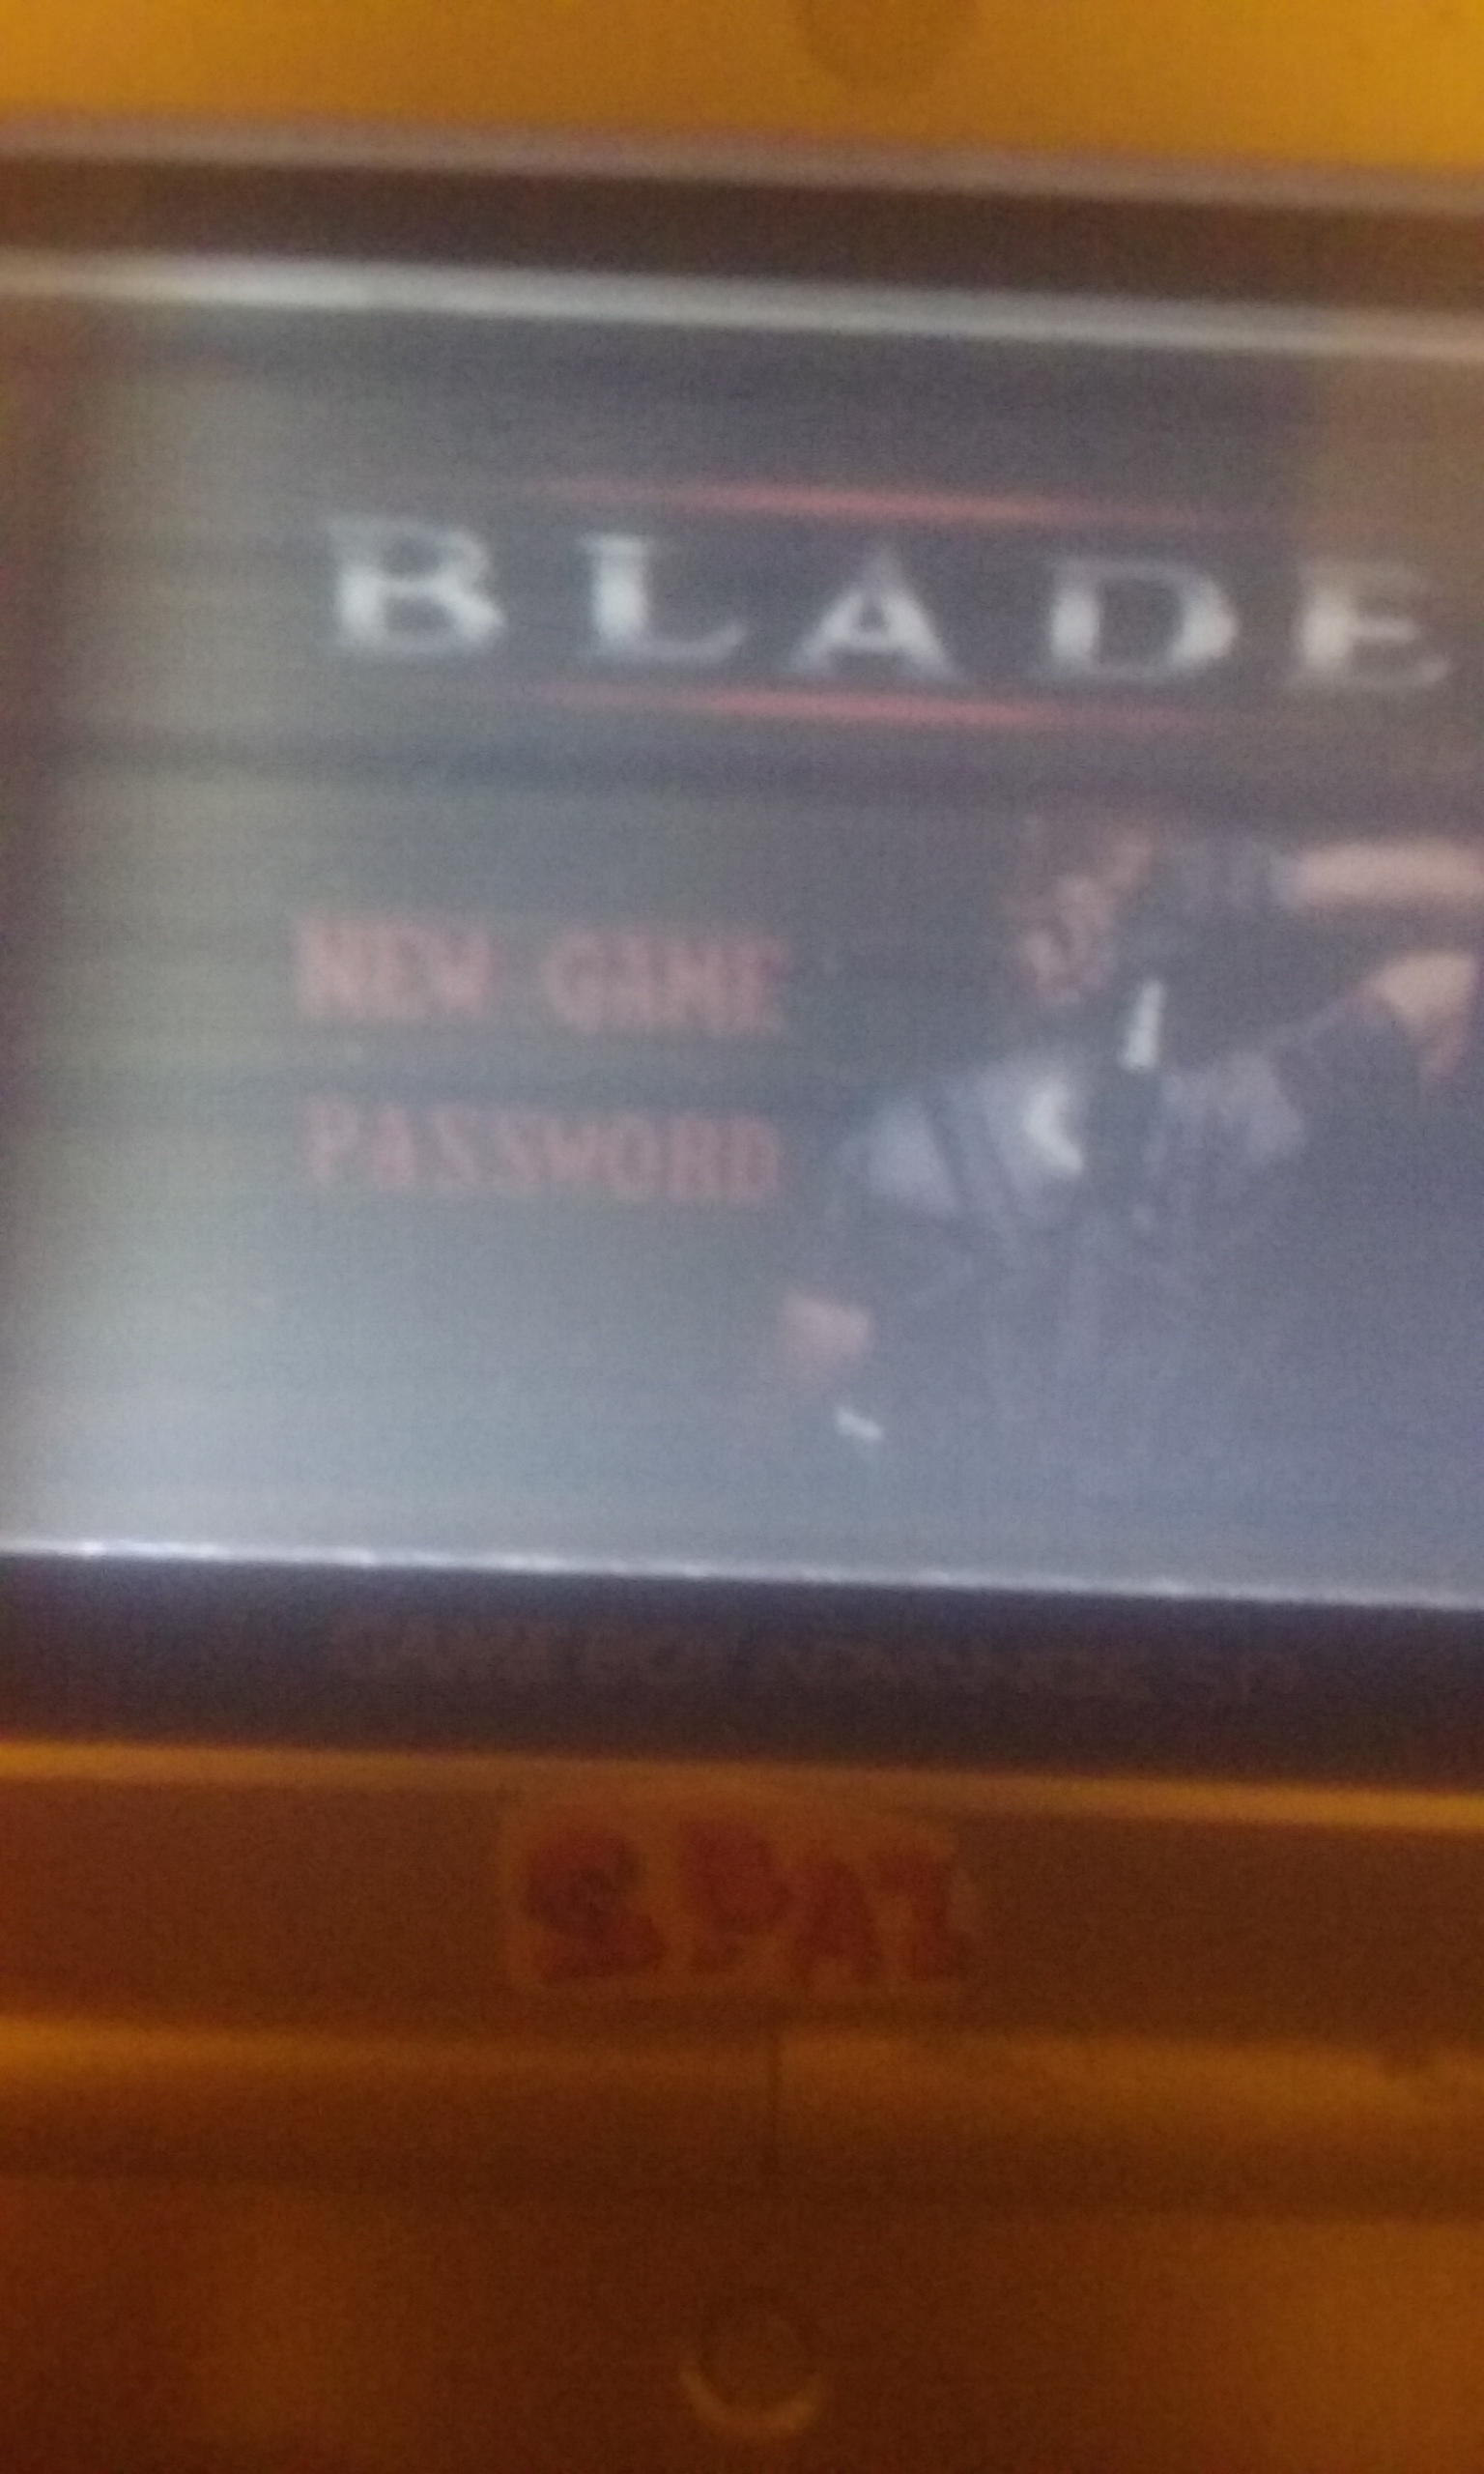 S.BAZ: Blade (Game Boy Color) 551 points on 2020-07-30 16:44:55